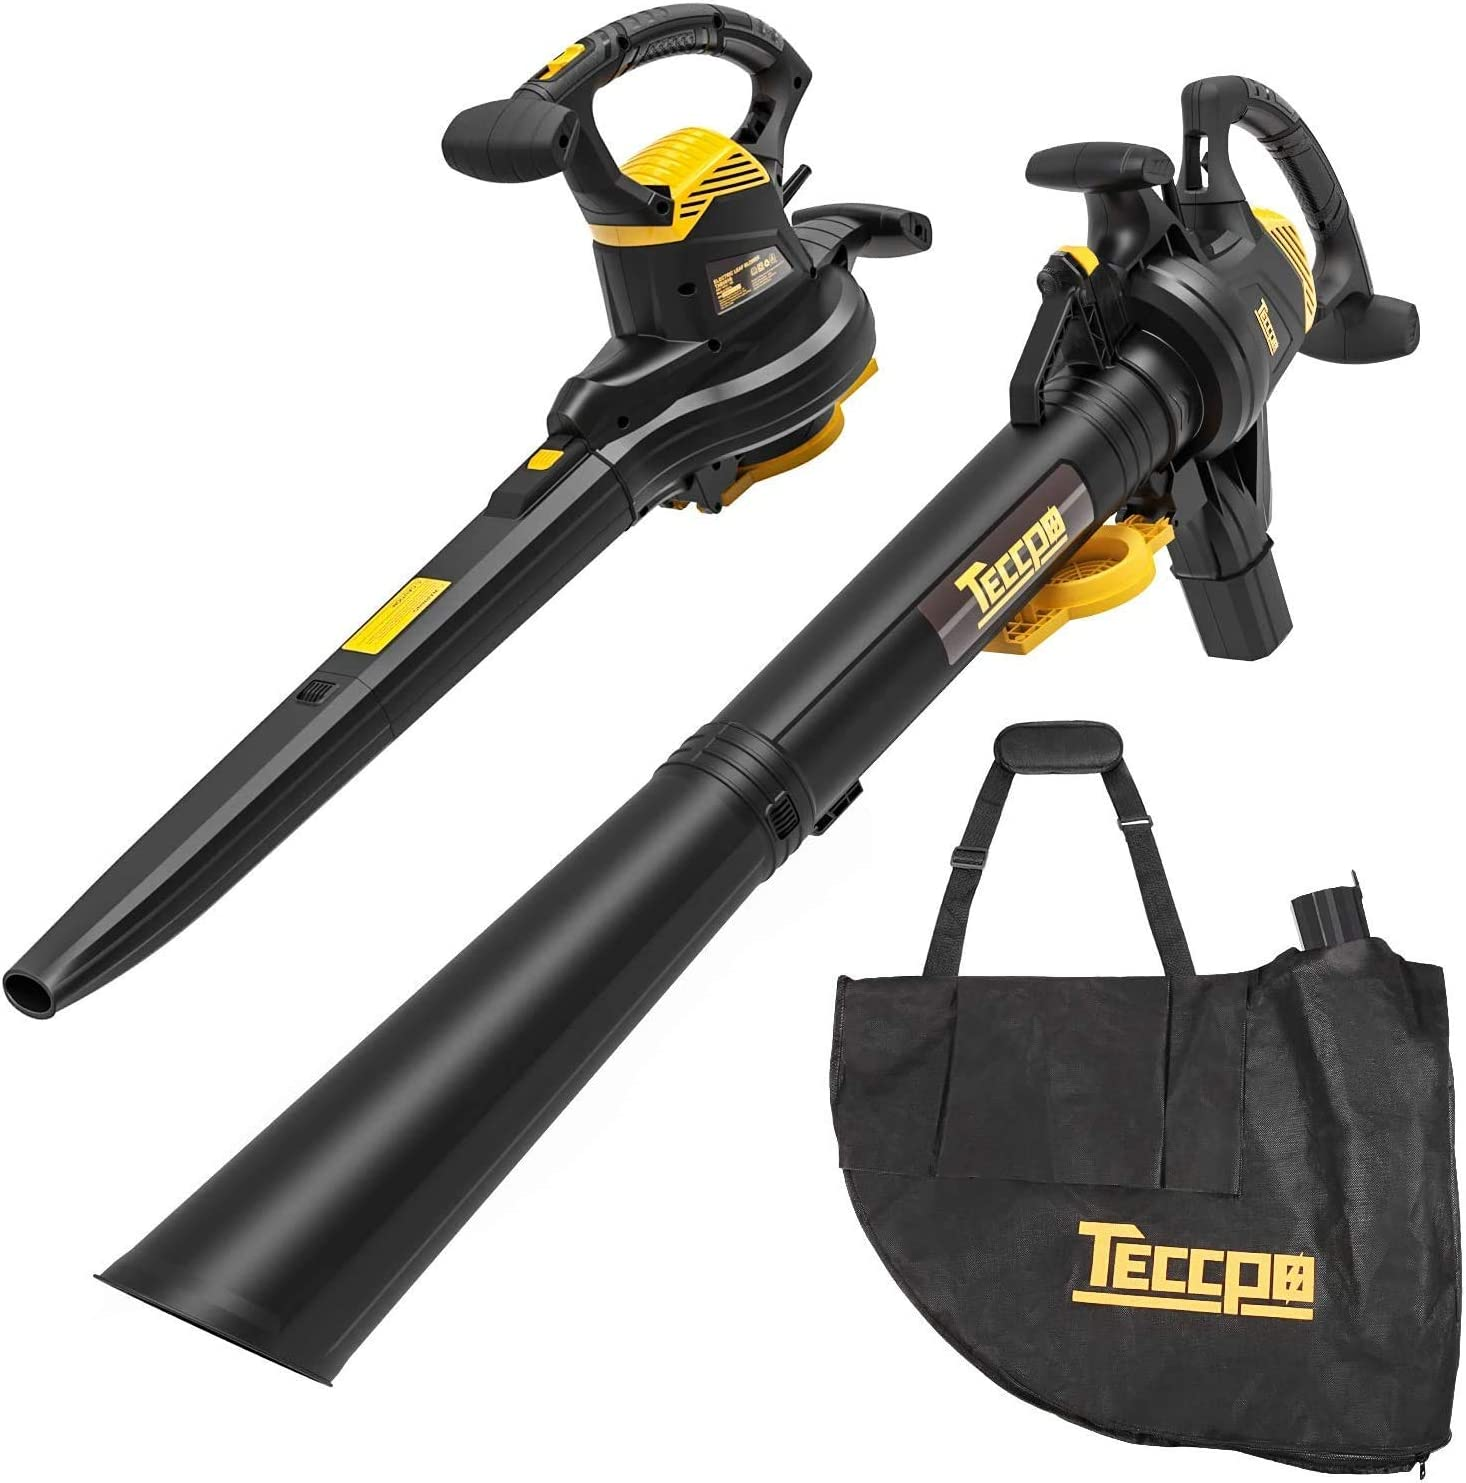 TECCPO Leaf Vacuum, 12 Amp 3-in-1 Leaf Blower/Vacuum/Mulcher, Mulching Ration of 16:1, Variable Blow Speed of 170/250mph, 280/410 CFM, 40L Collection Bag - TABV01G